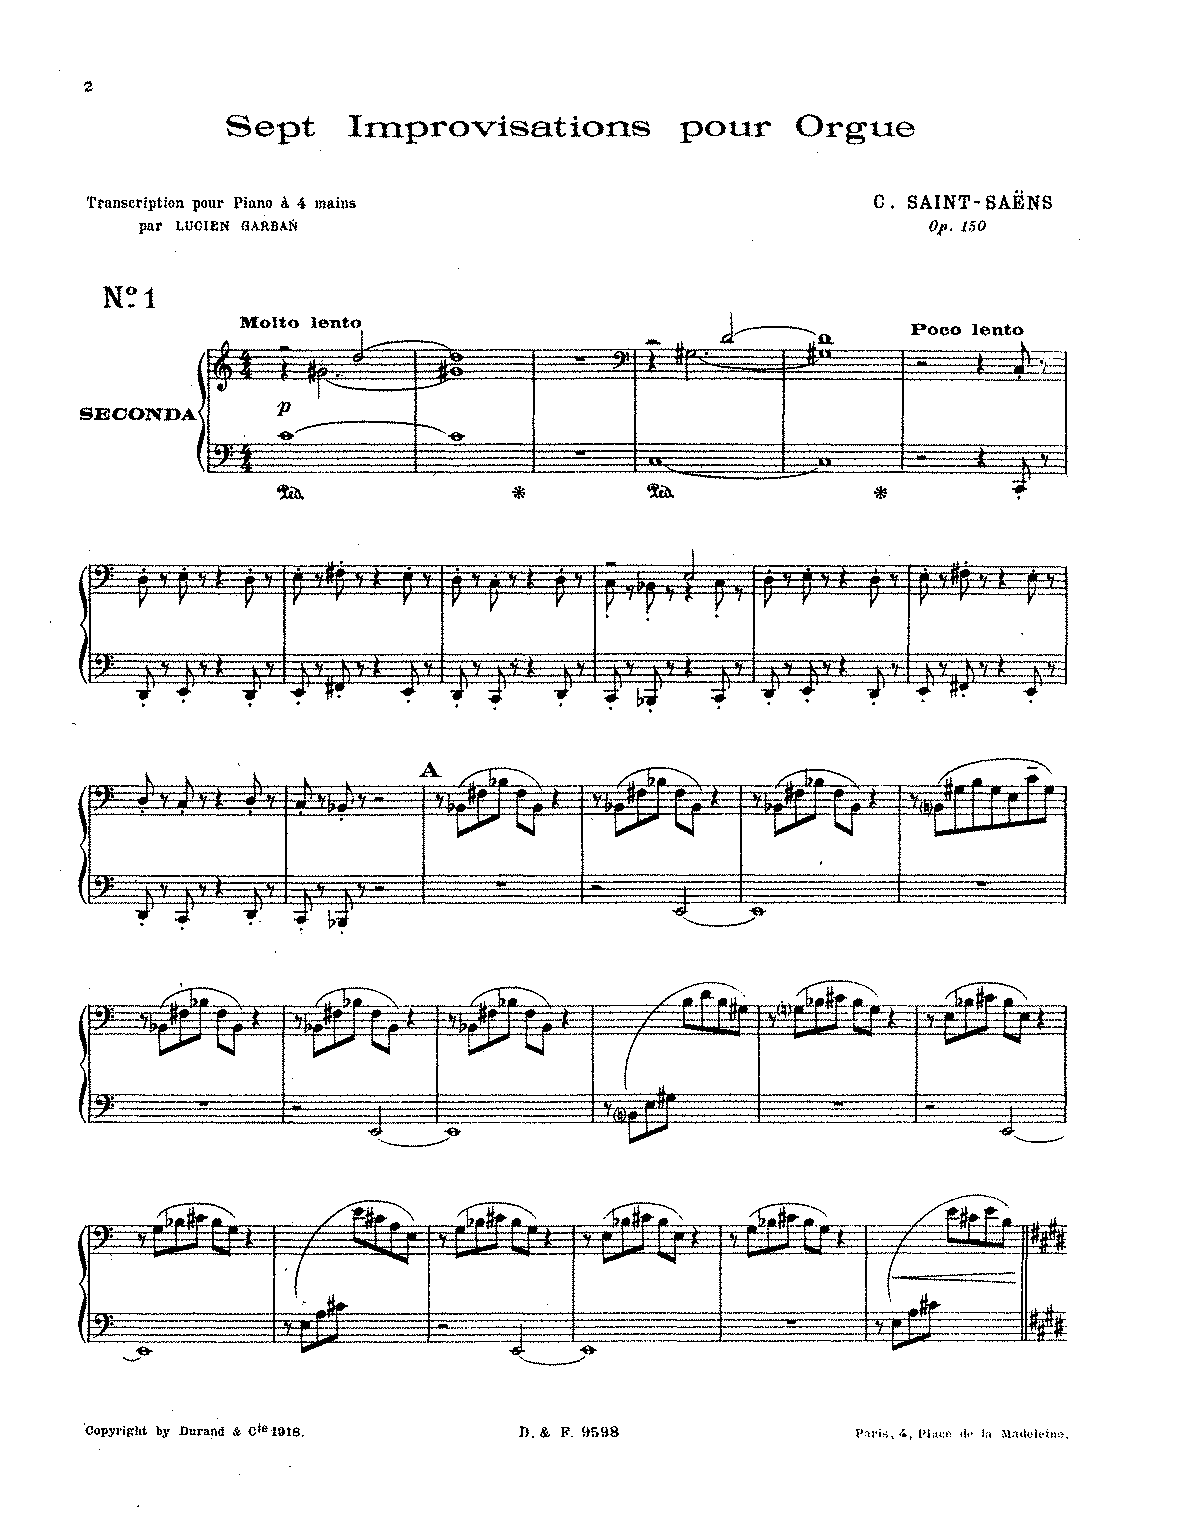 PMLP09635-Saint-Saëns - 7 Improvisations, Op. 150 (trans. Garban - piano 4 hands).pdf